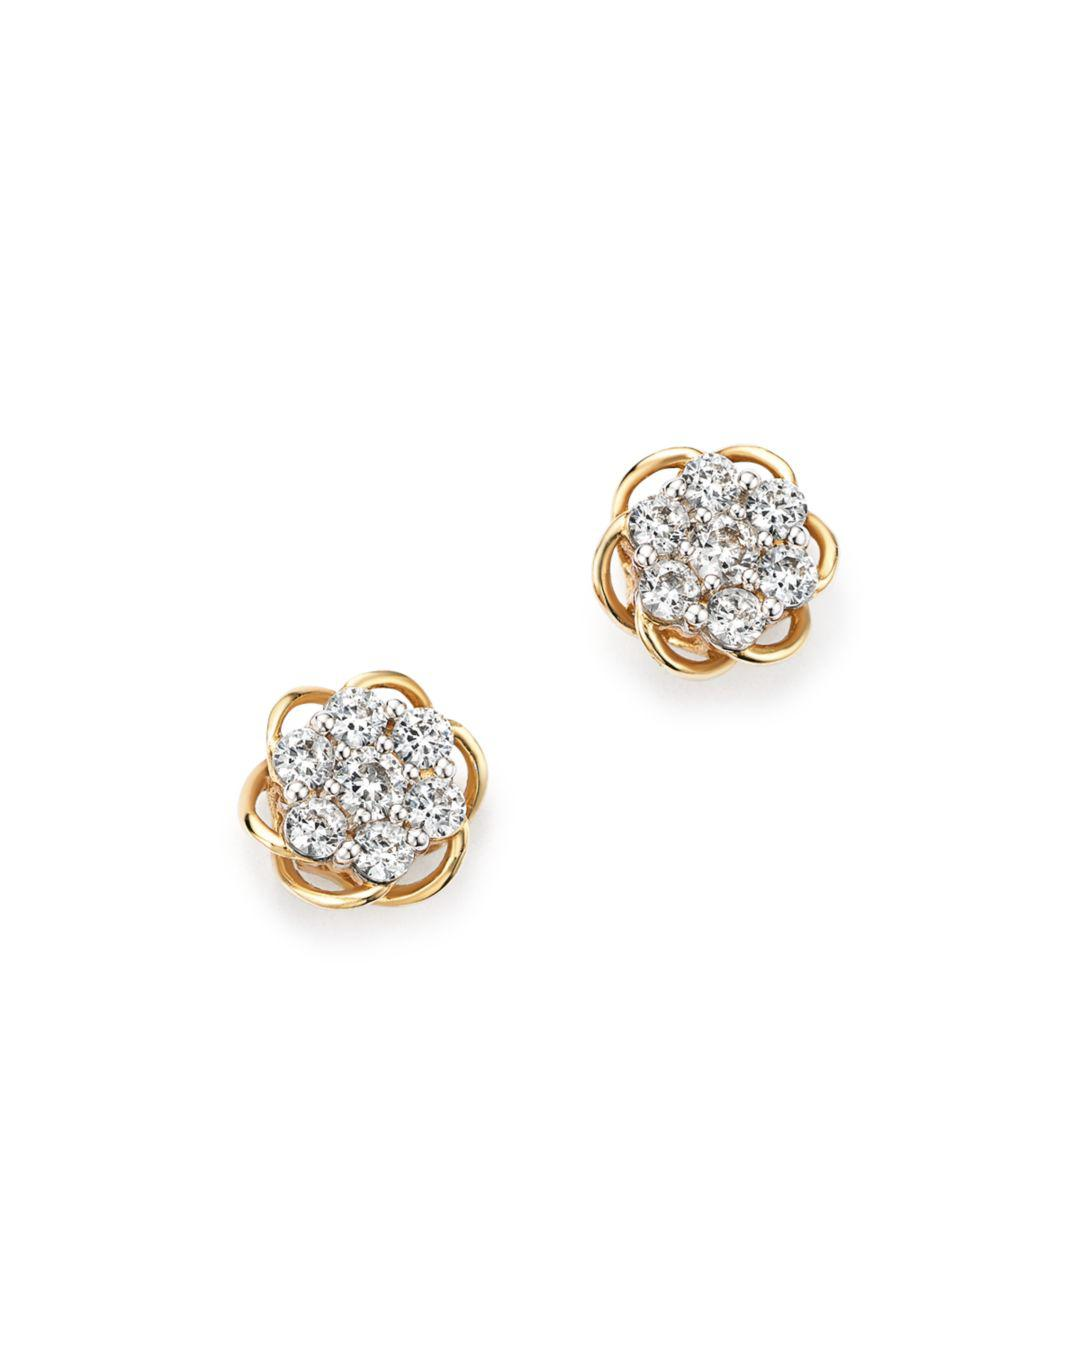 Bloomingdale S Multicolor Diamond Flower Stud Earrings In 14k Yellow And White Gold 50 View Fullscreen